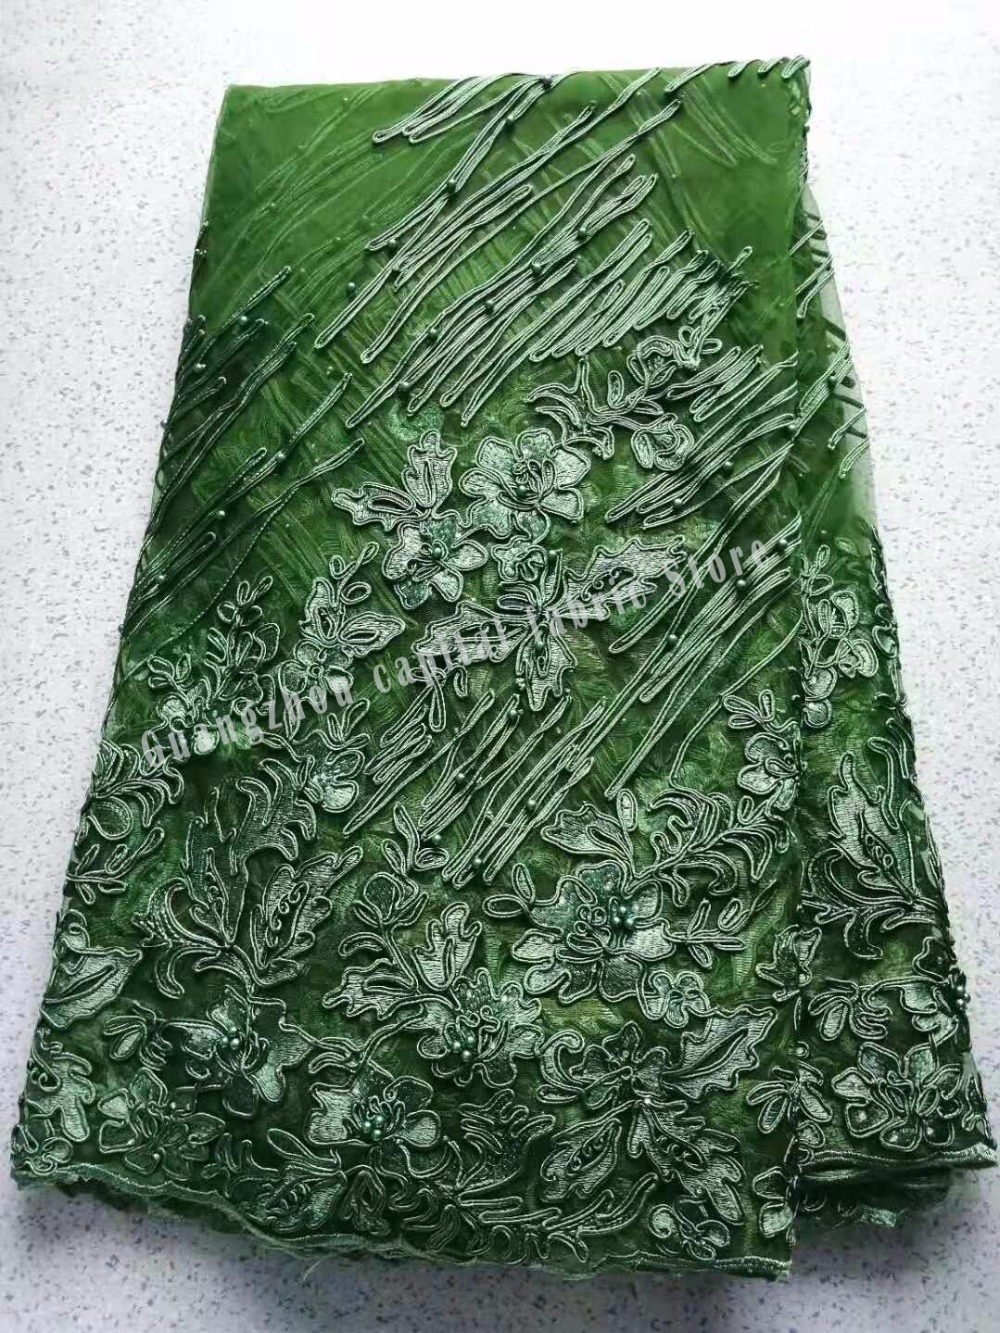 Africas new green elegant high quality rope embroidery edge and beads fabric, fashionable and beautiful party dressAfricas new green elegant high quality rope embroidery edge and beads fabric, fashionable and beautiful party dress